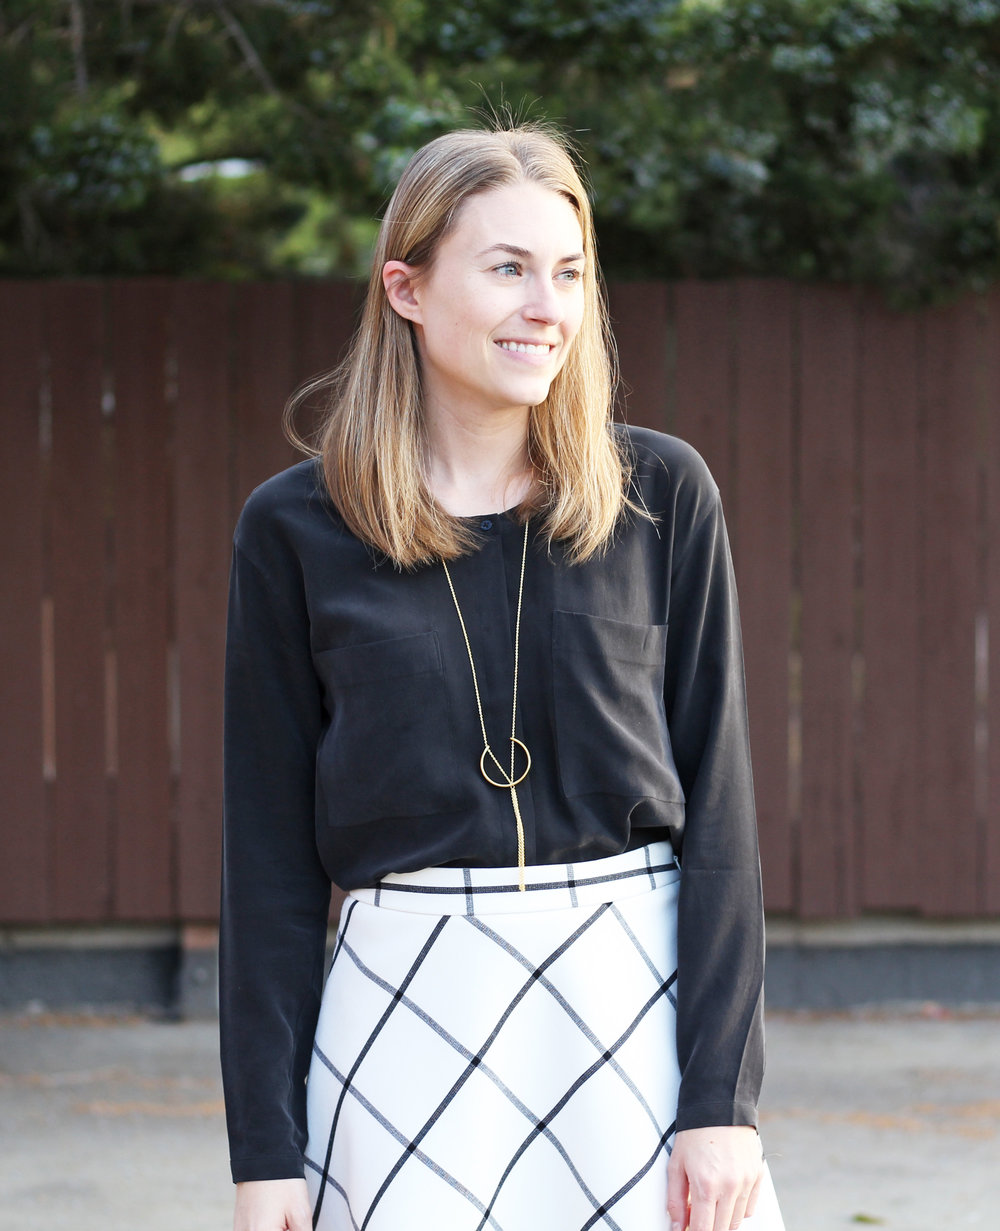 Windowpane skirt with black top and pendant necklace — Cotton Cashmere Cat Hair